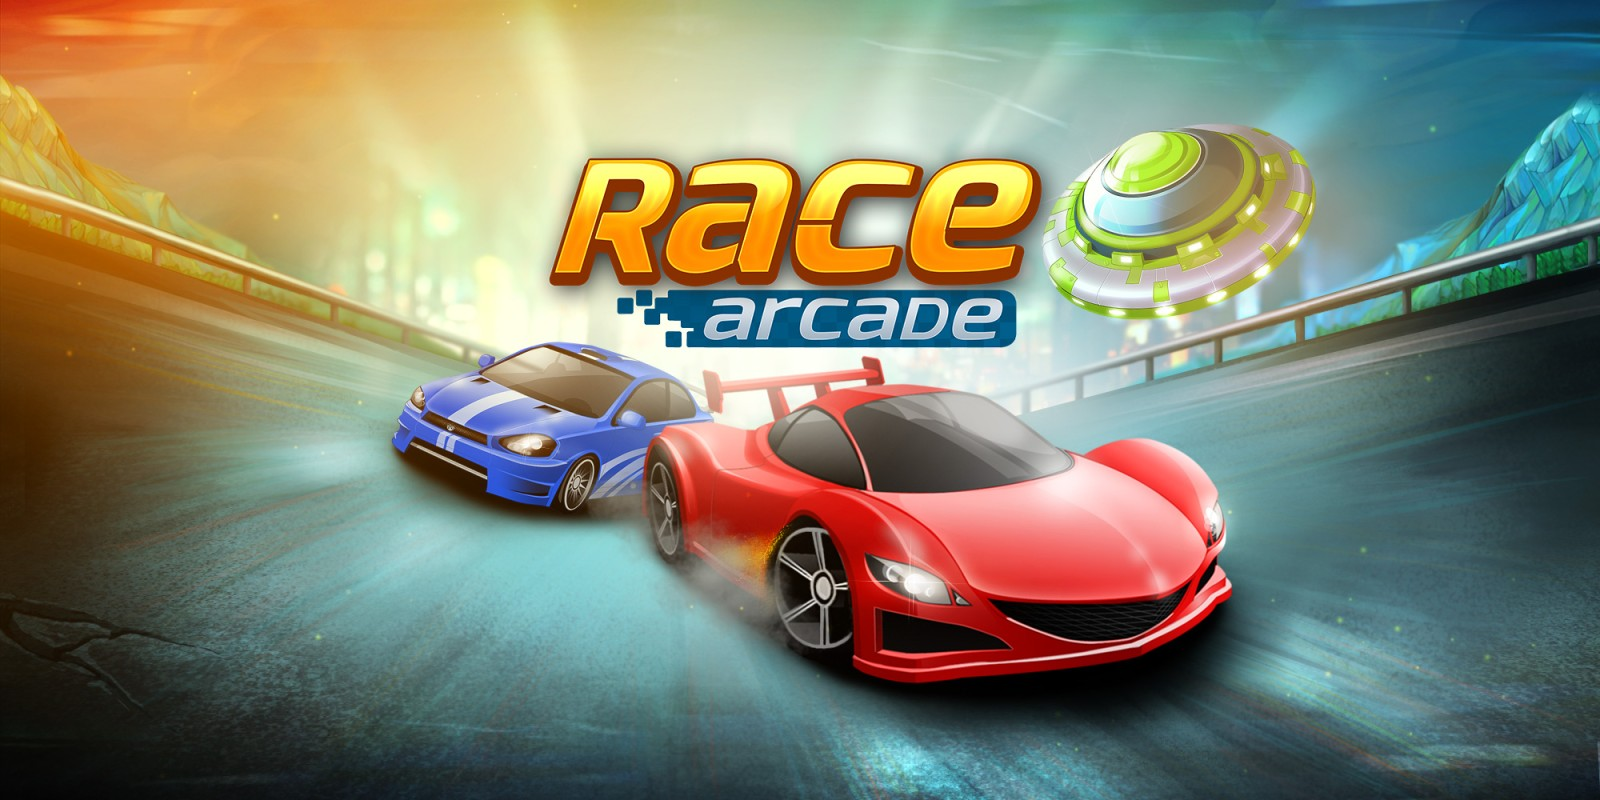 Driving Racing Car >> Race Arcade | Nintendo Switch download software | Games | Nintendo